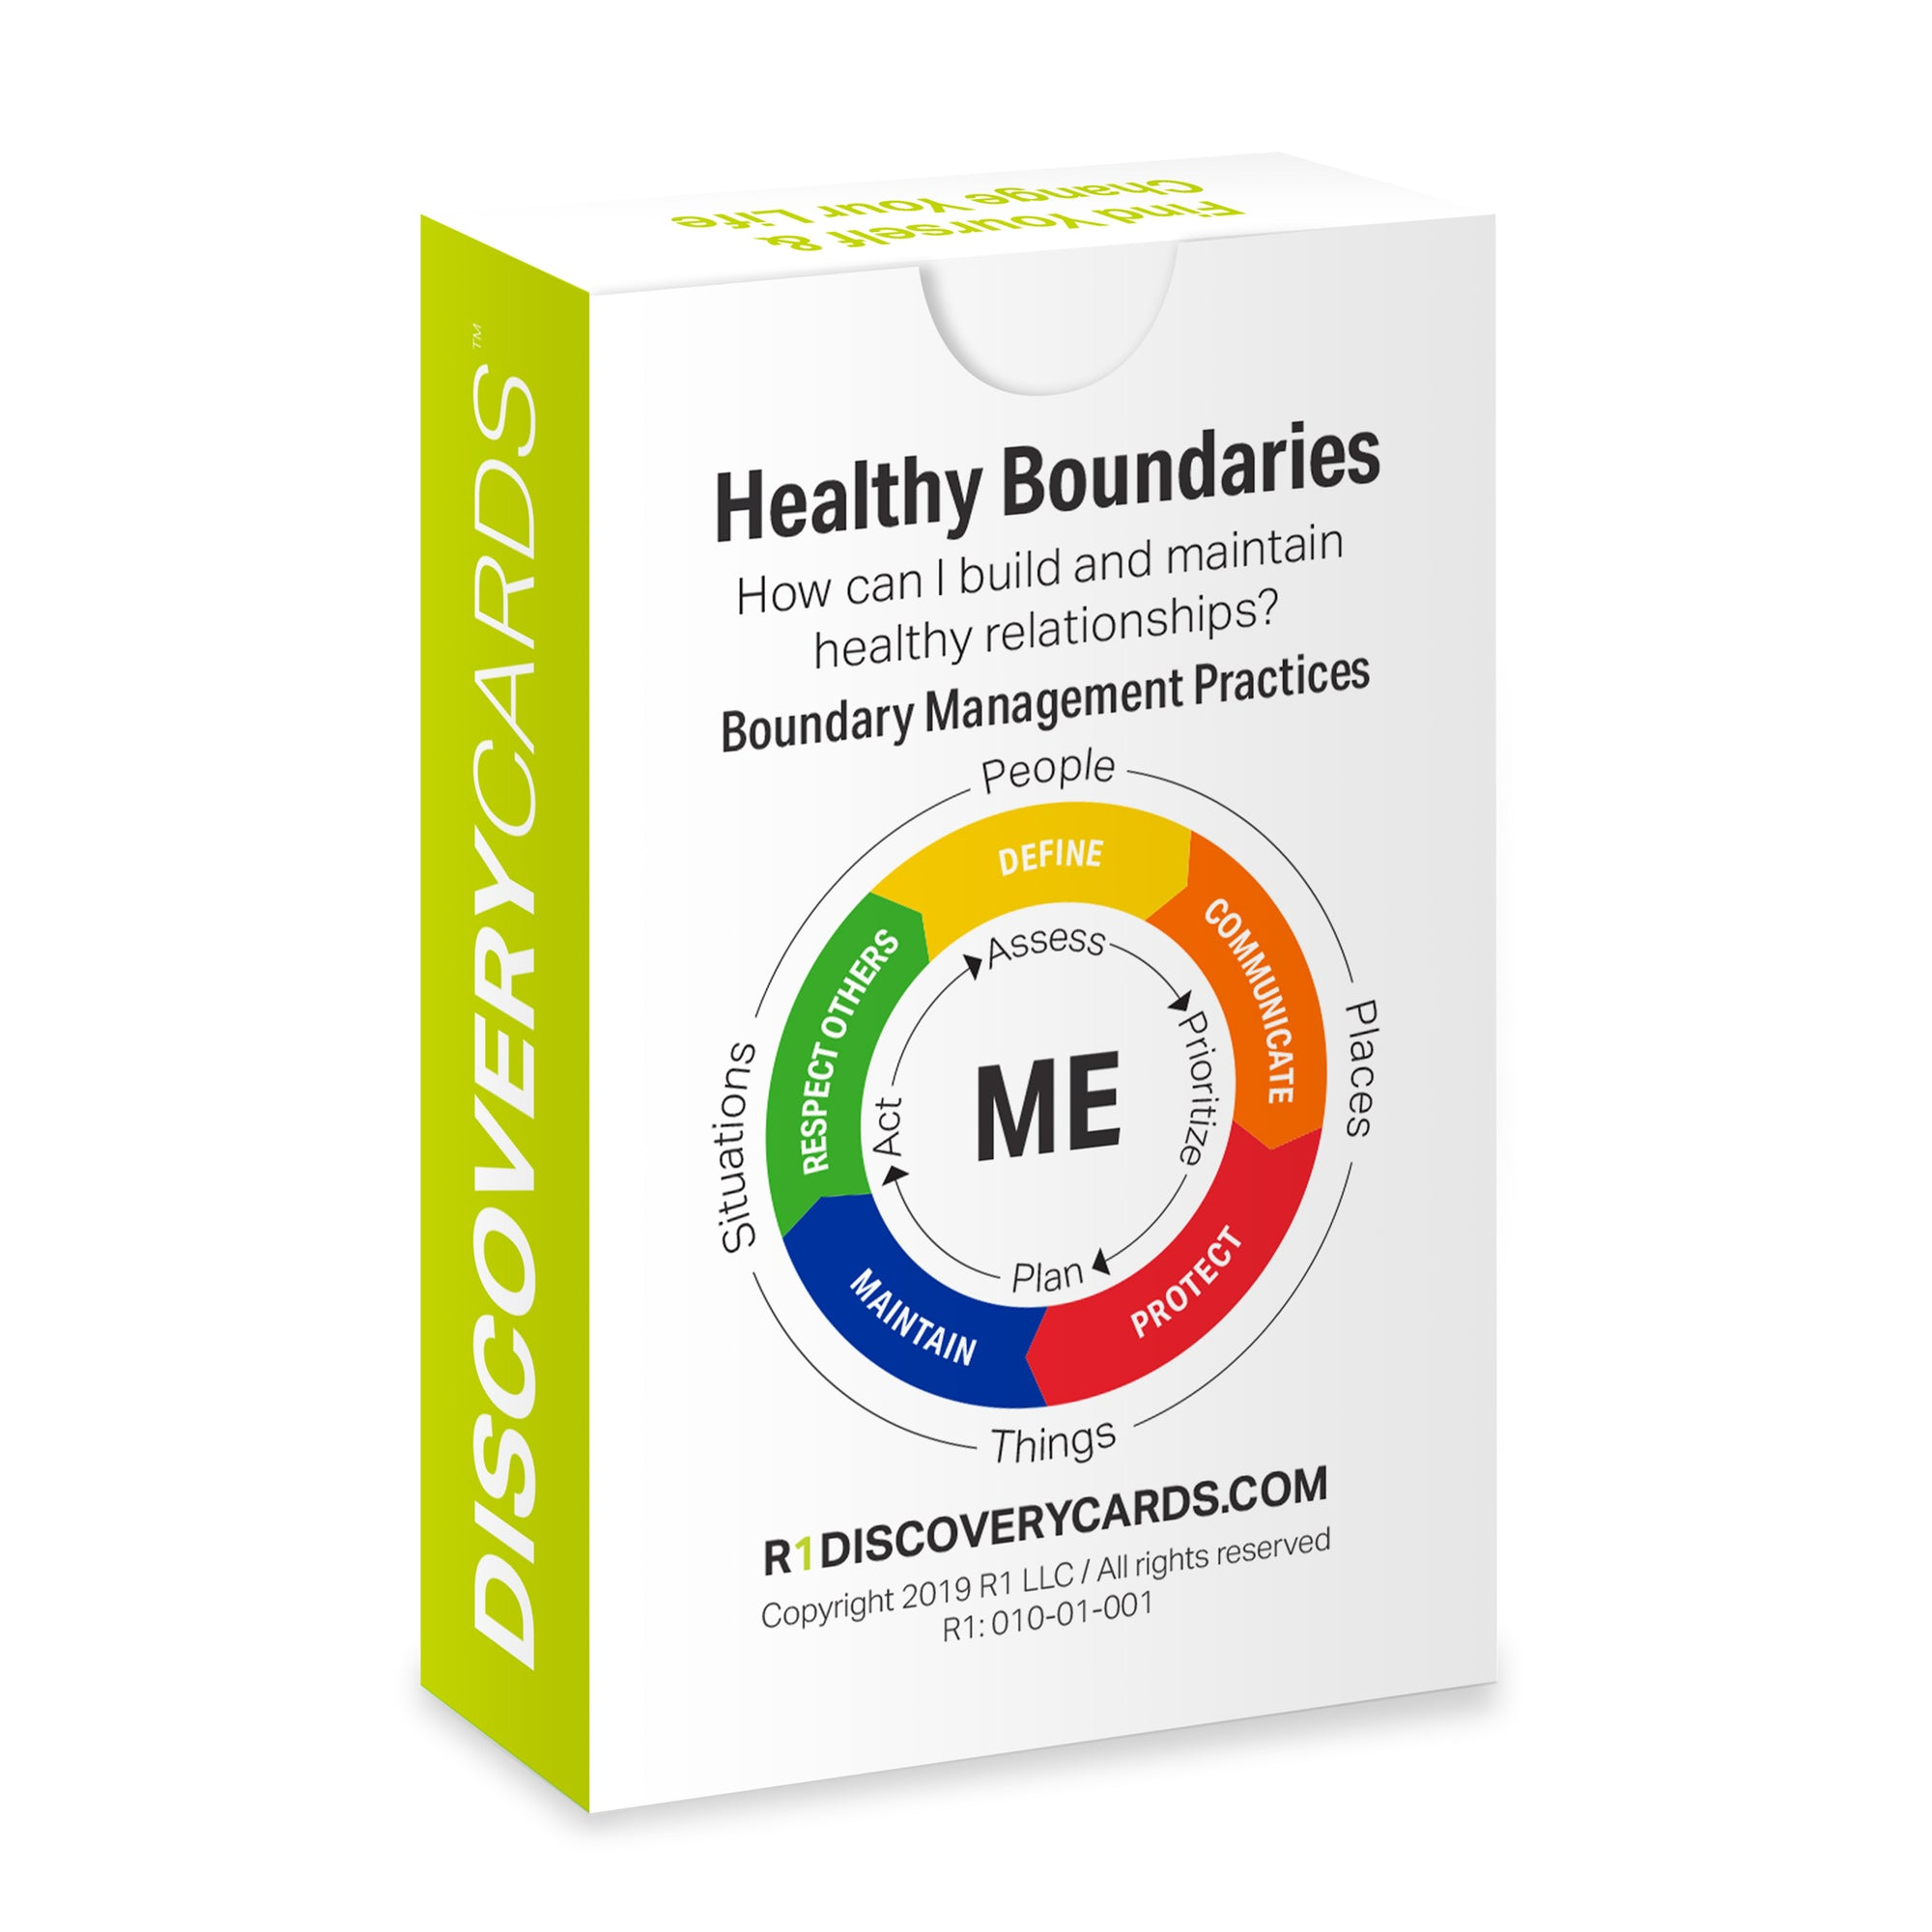 March 5, 1:00–2:30 pm US ET (90 minutes) — Healthy Boundaries Virtual Training